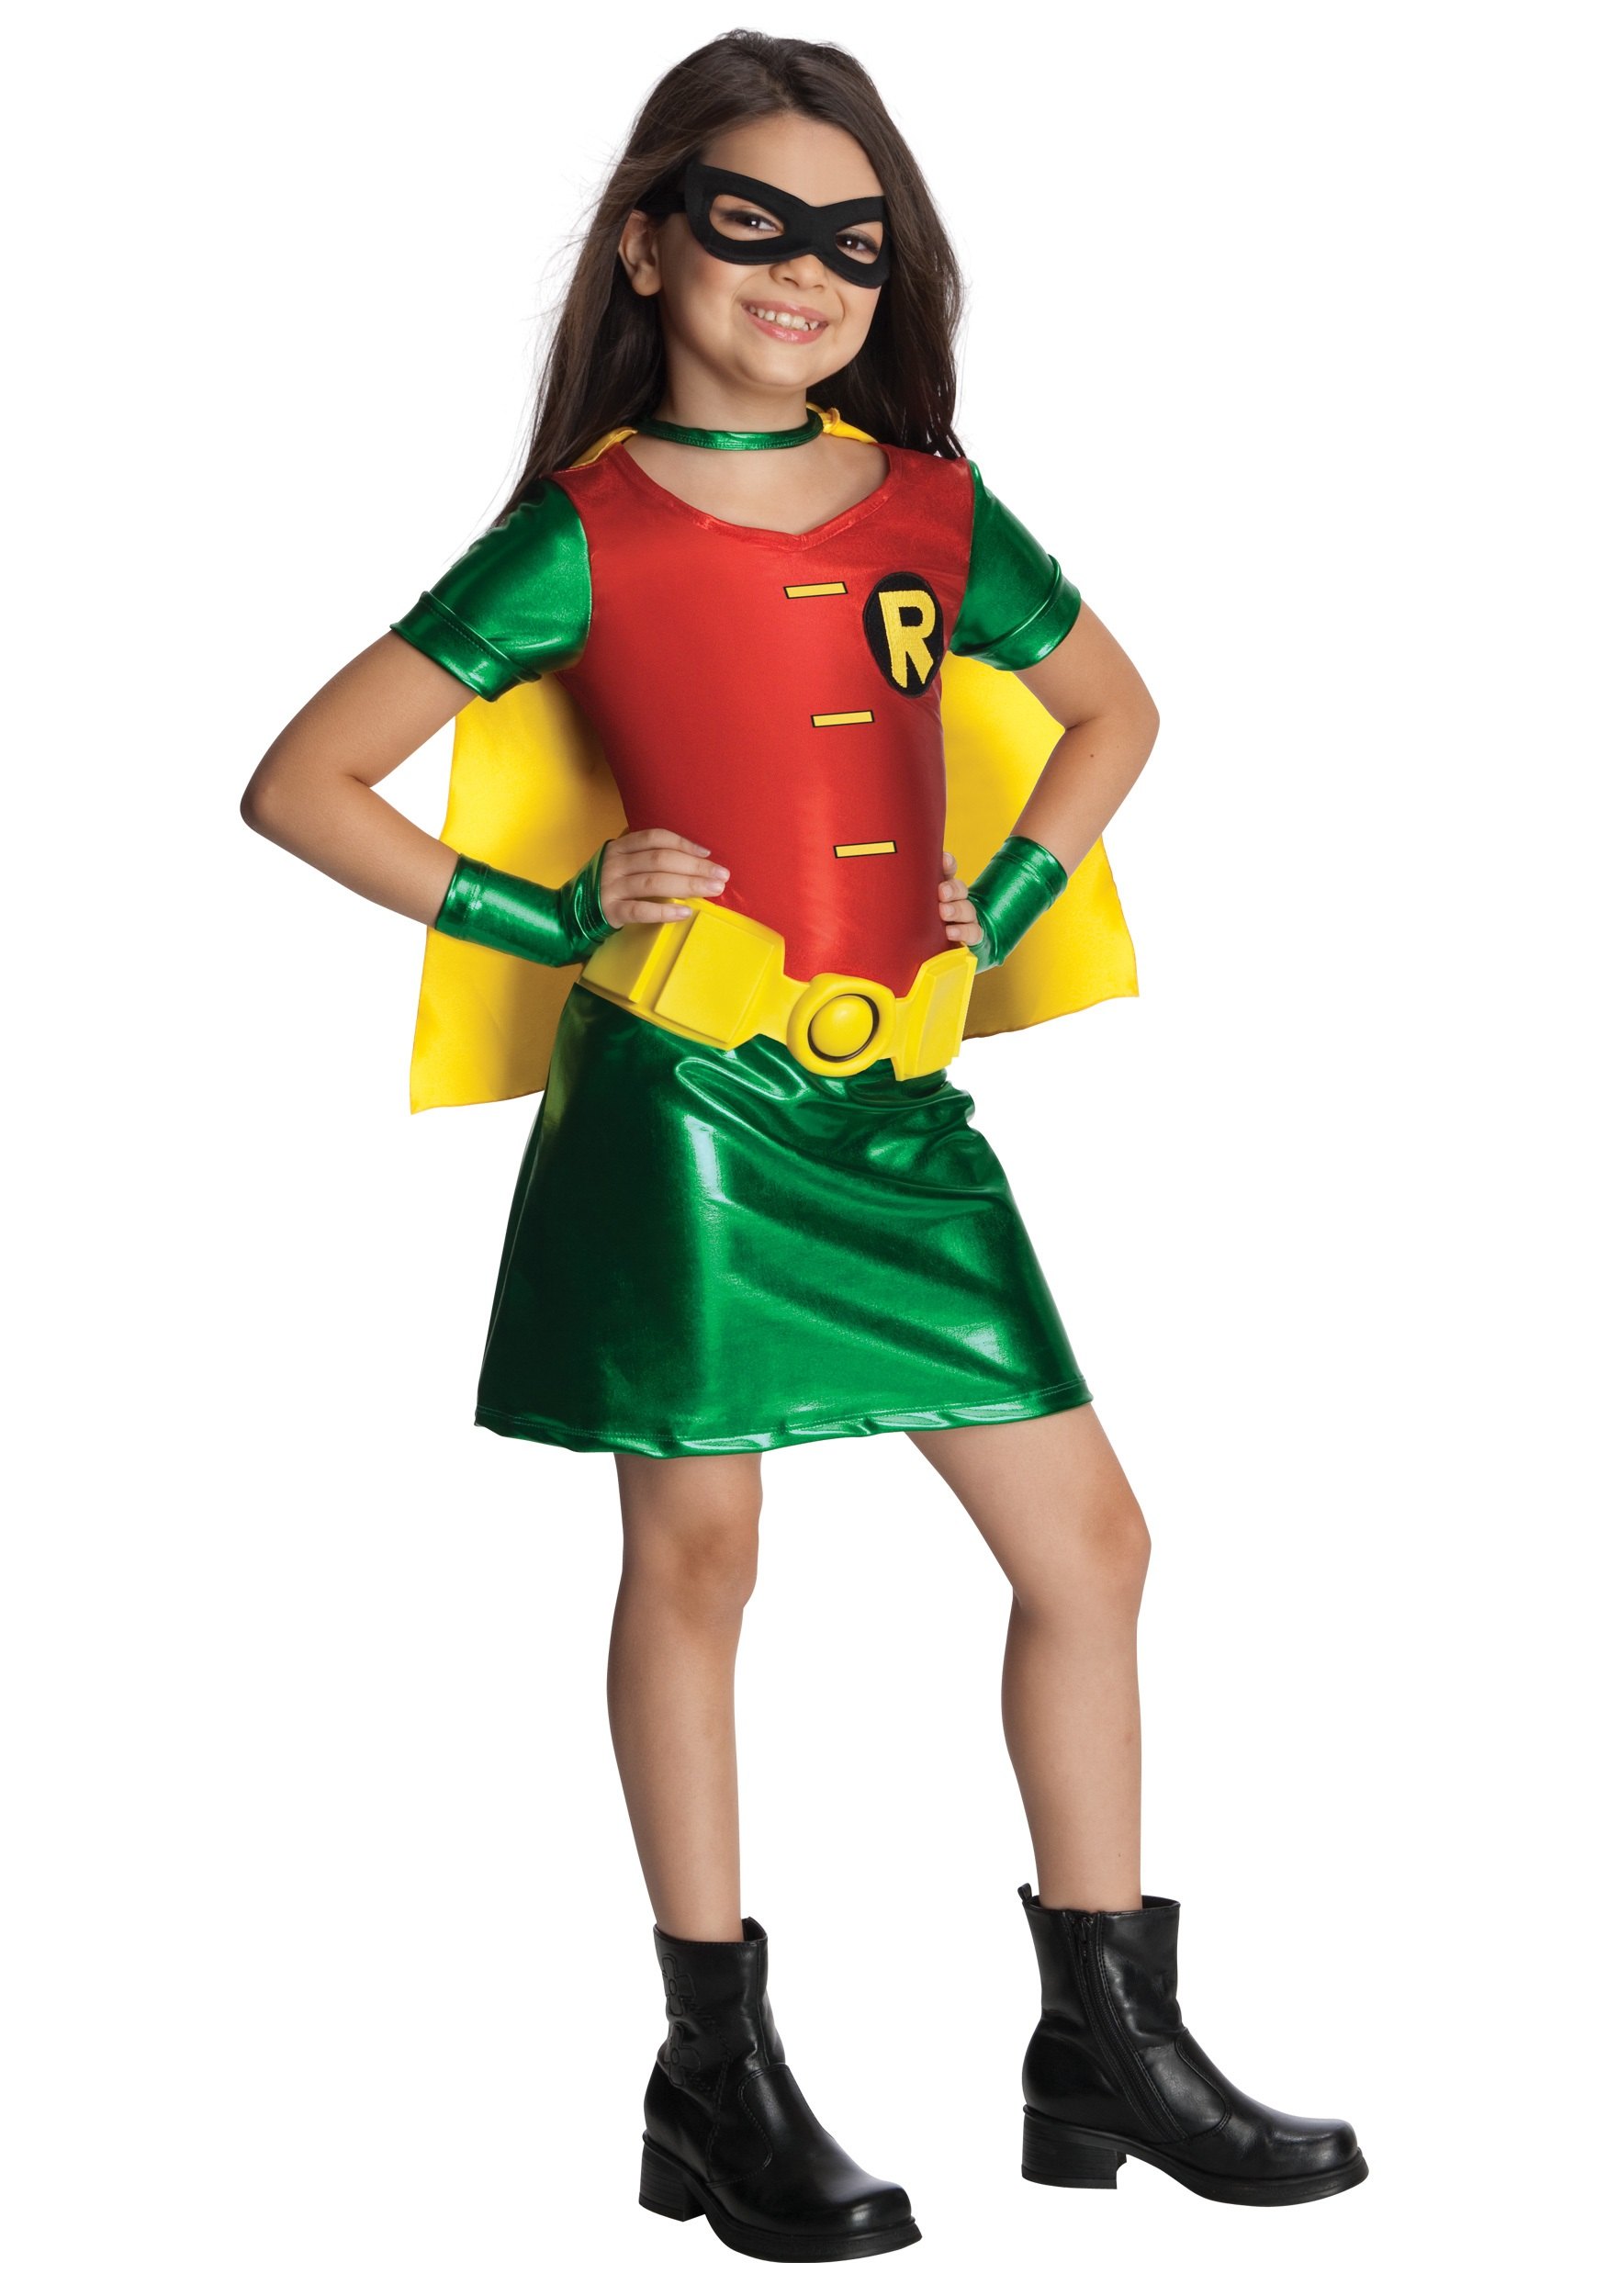 Girls Comic Book Titans Robin Costume  sc 1 st  Halloween Costume & Girls Comic Book Titans Robin Costume - Girls Superhero Costumes